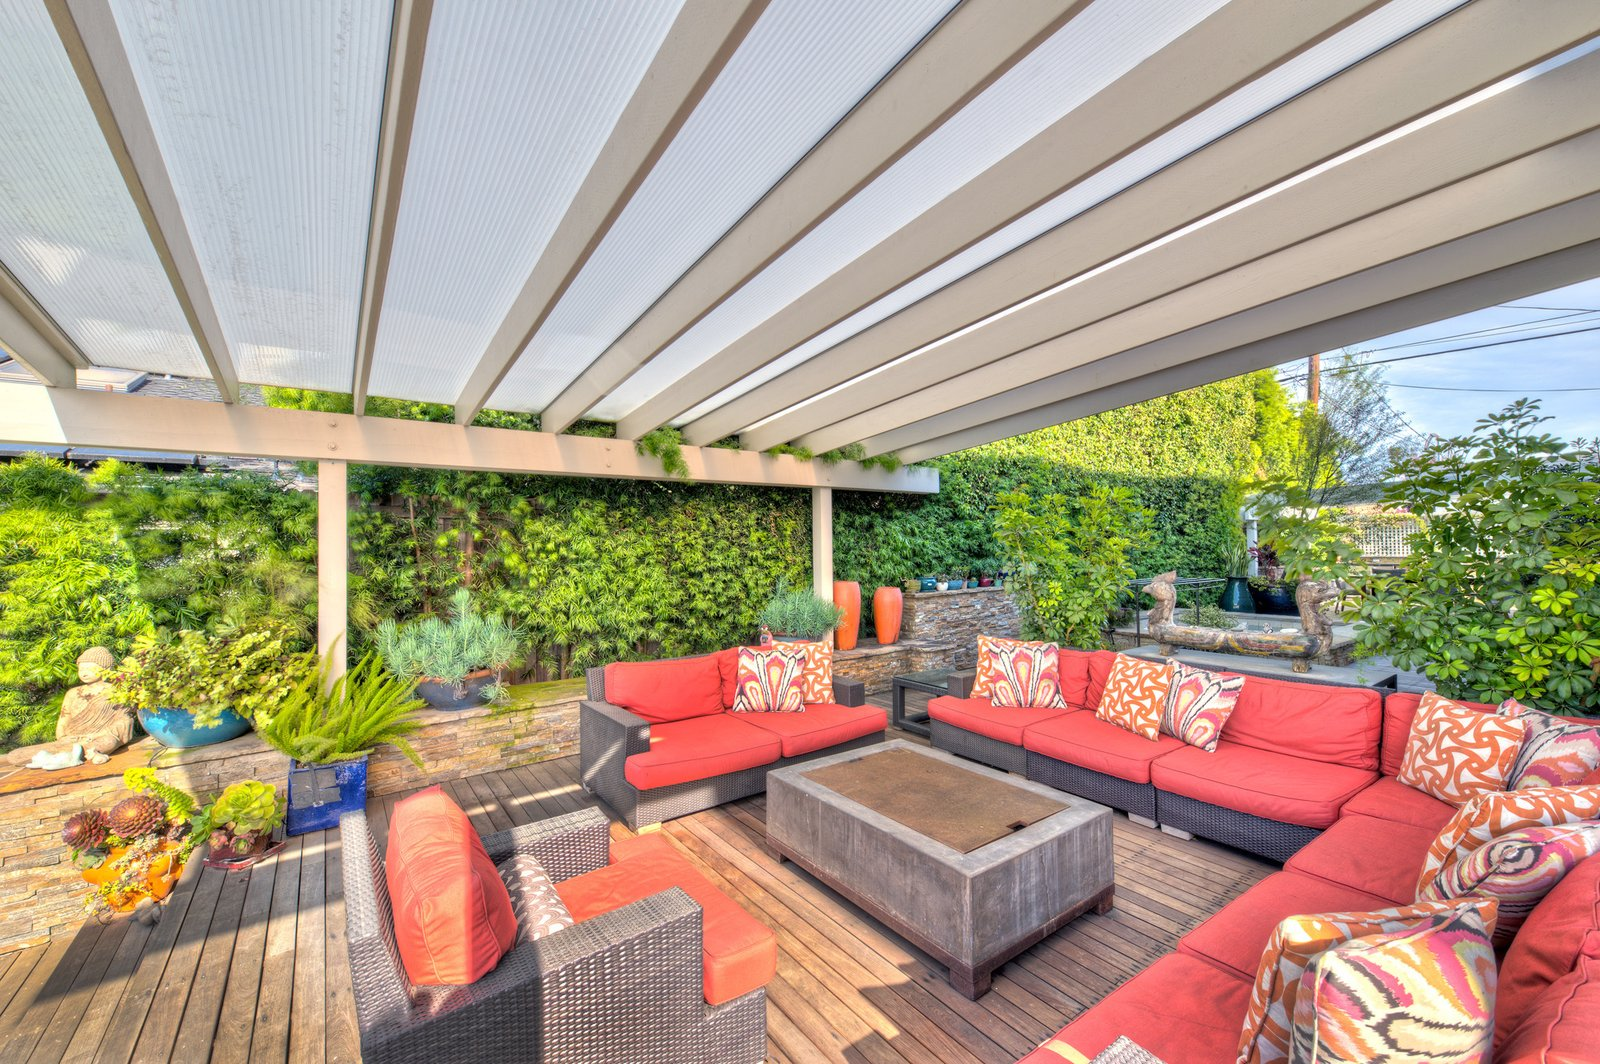 Equipped with outdoor living, kitchen and dining areas—and a stunning fire pit, the deck also boasts a built-in spa. Tagged: Outdoor.  Photo 2 of 9 in On the Market For $4.5M, This Venice Beach Compound Captures the Essence of Indoor-Outdoor Living